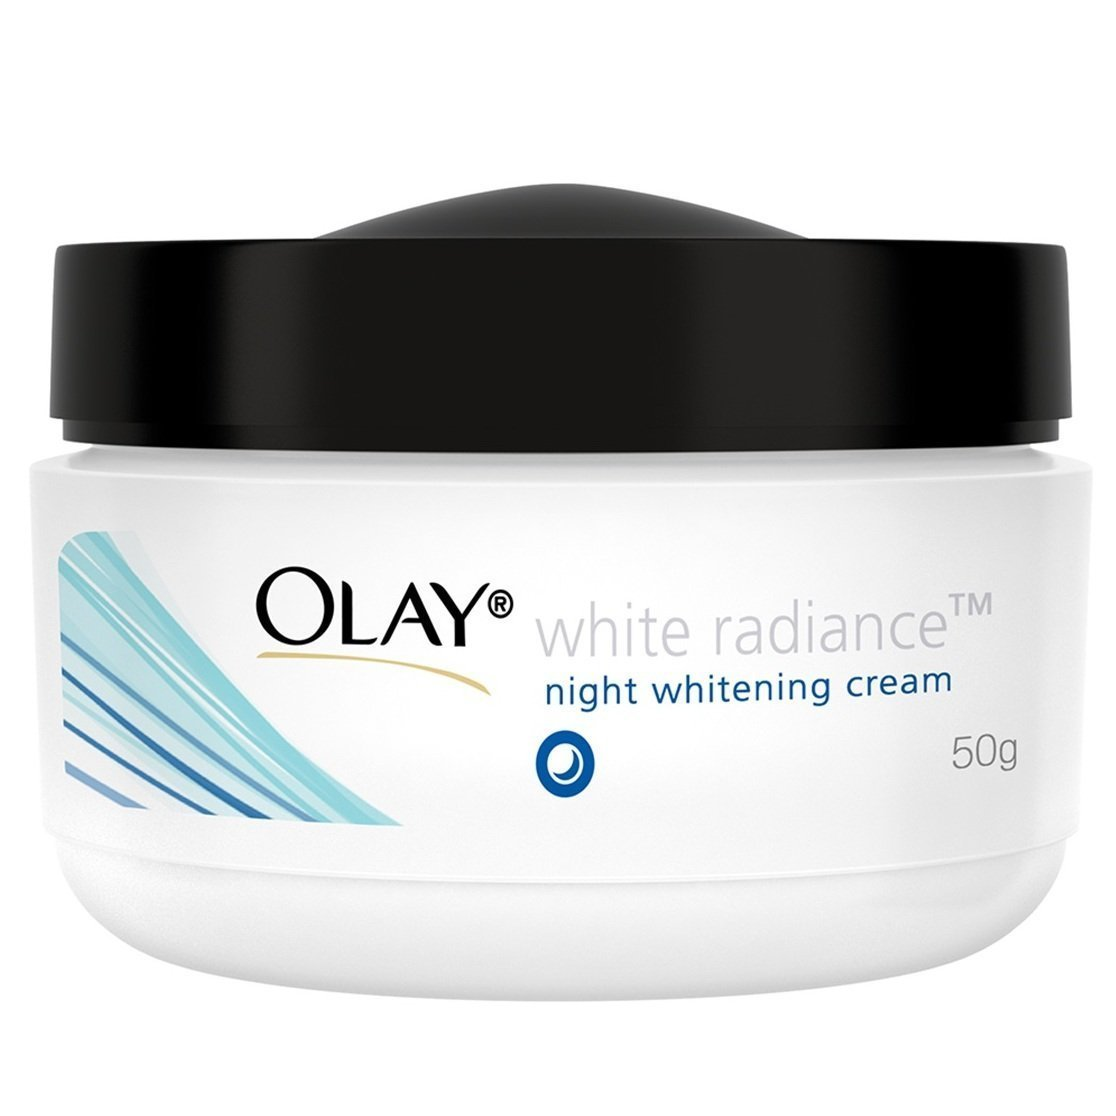 olay whitening night cream review